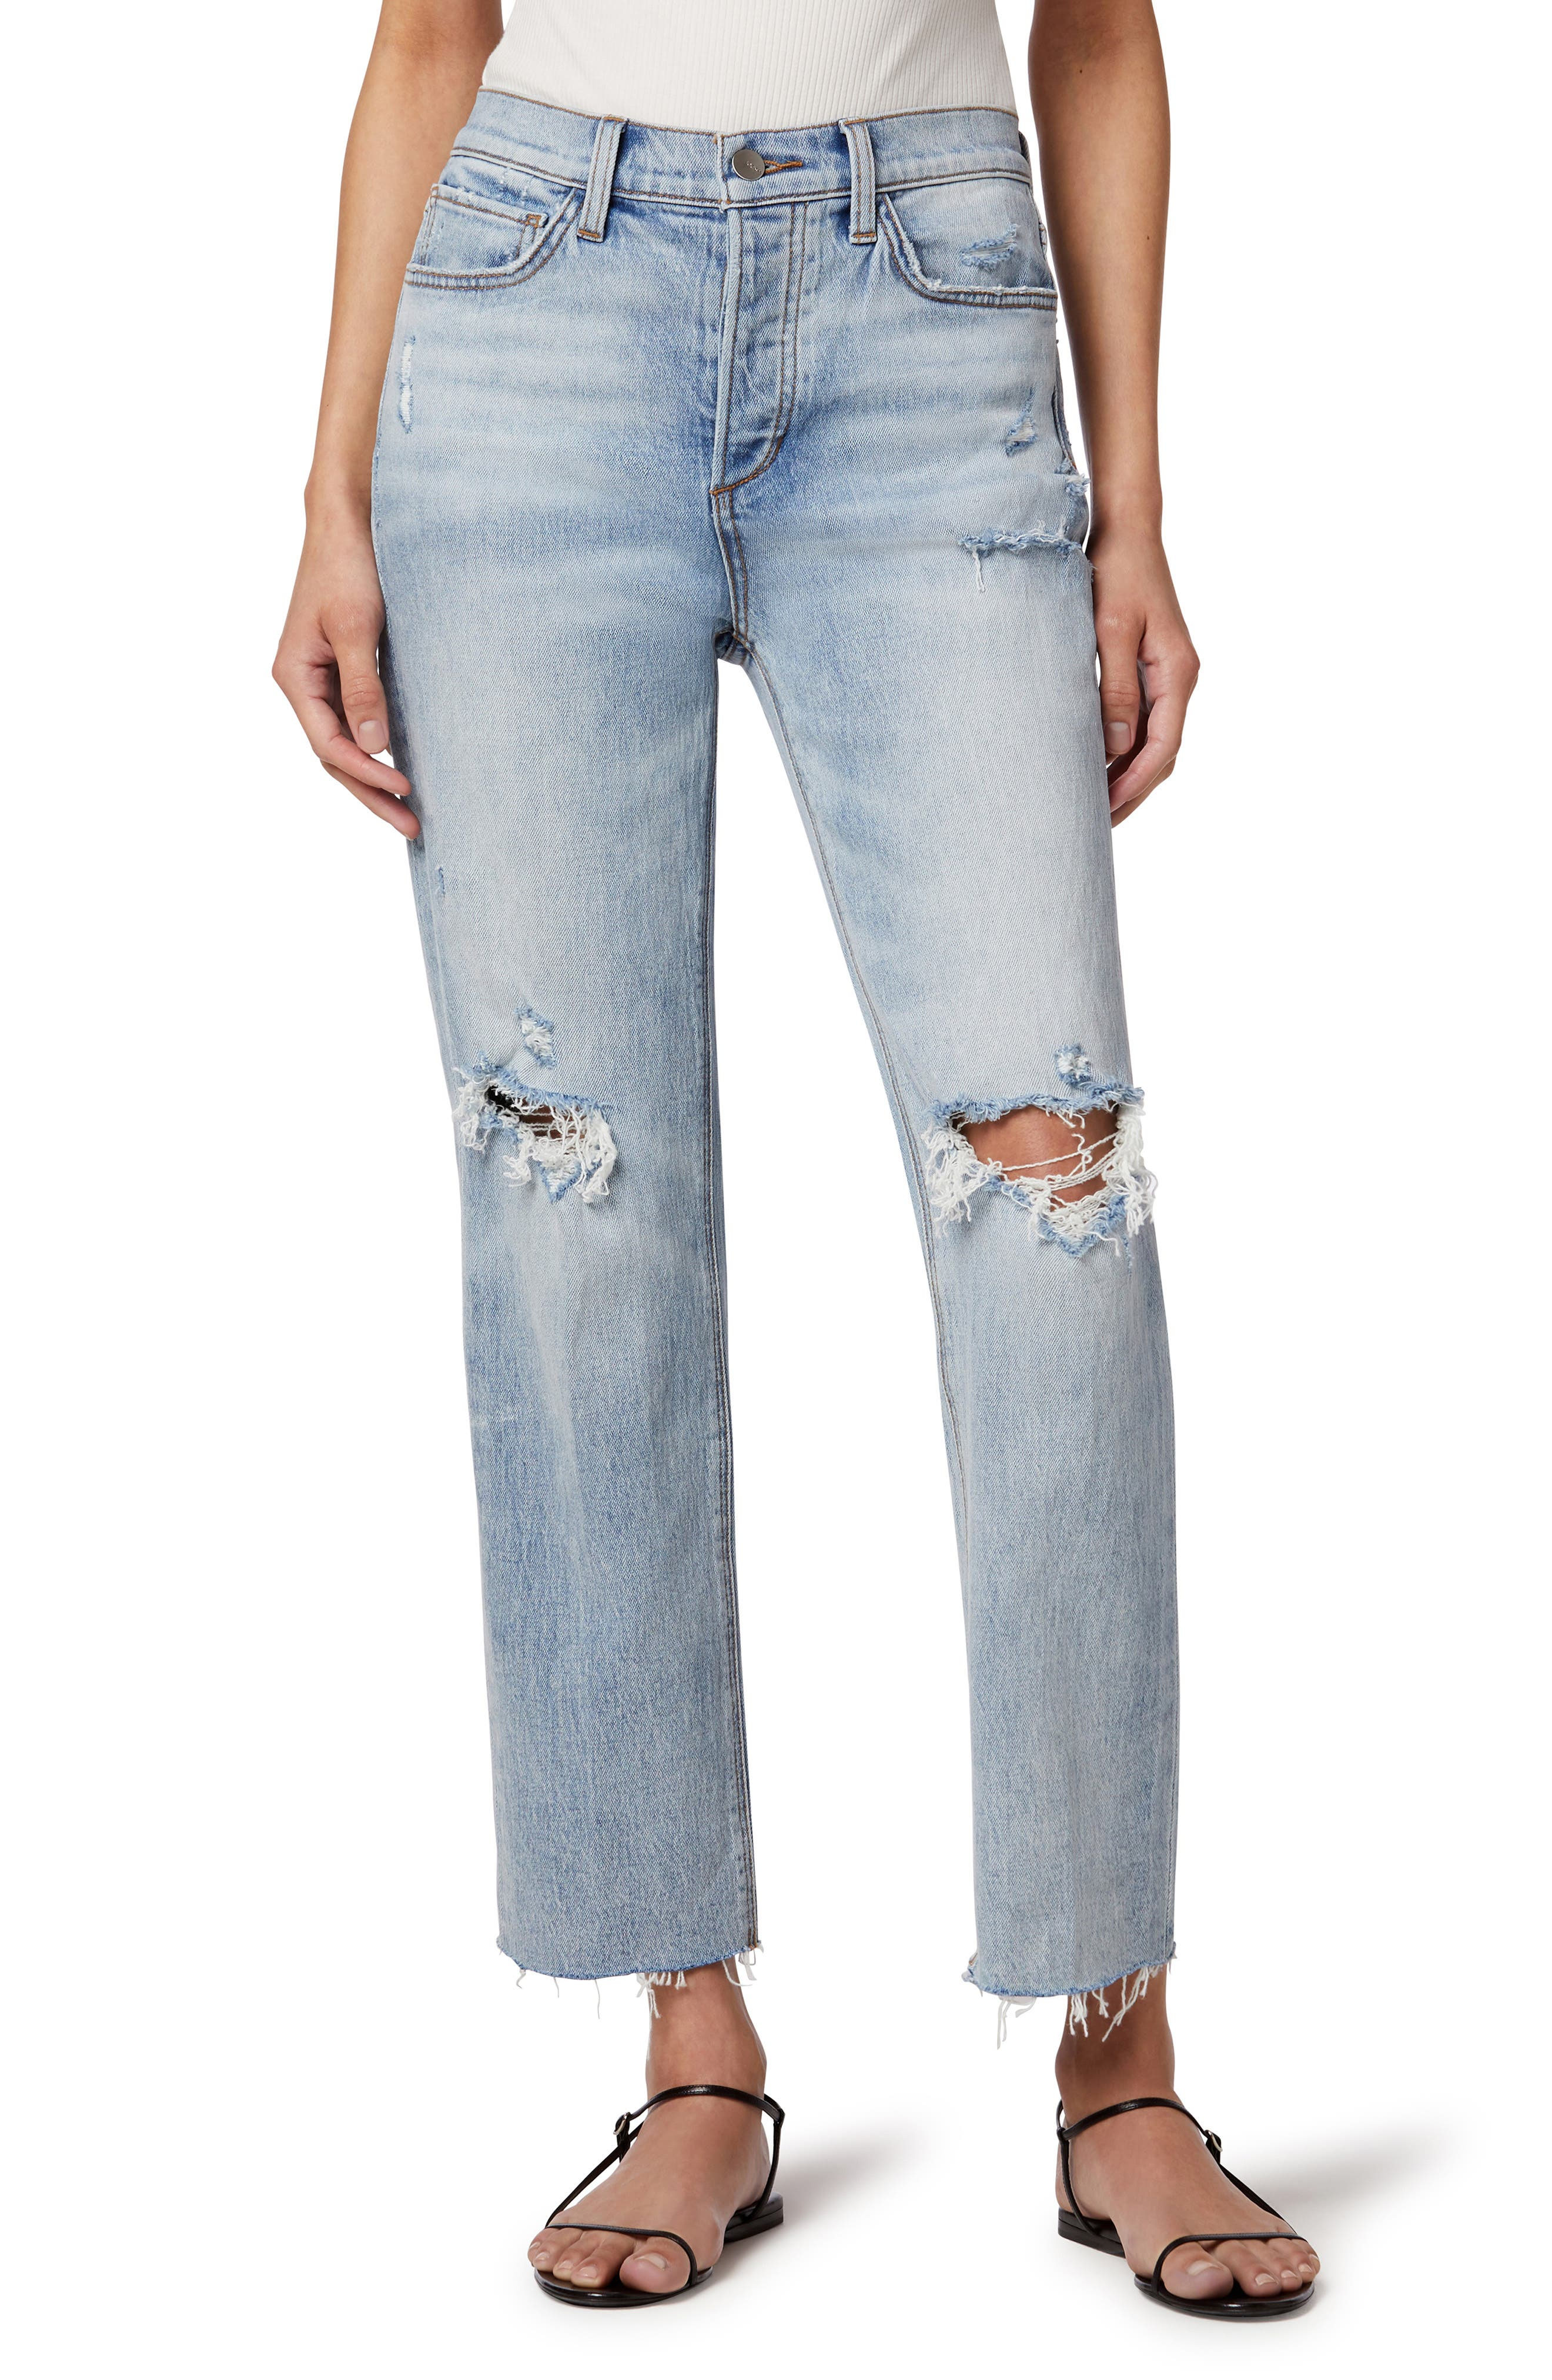 The Scout Ripped High Waist Raw Hem Ankle Straight Leg Jeans